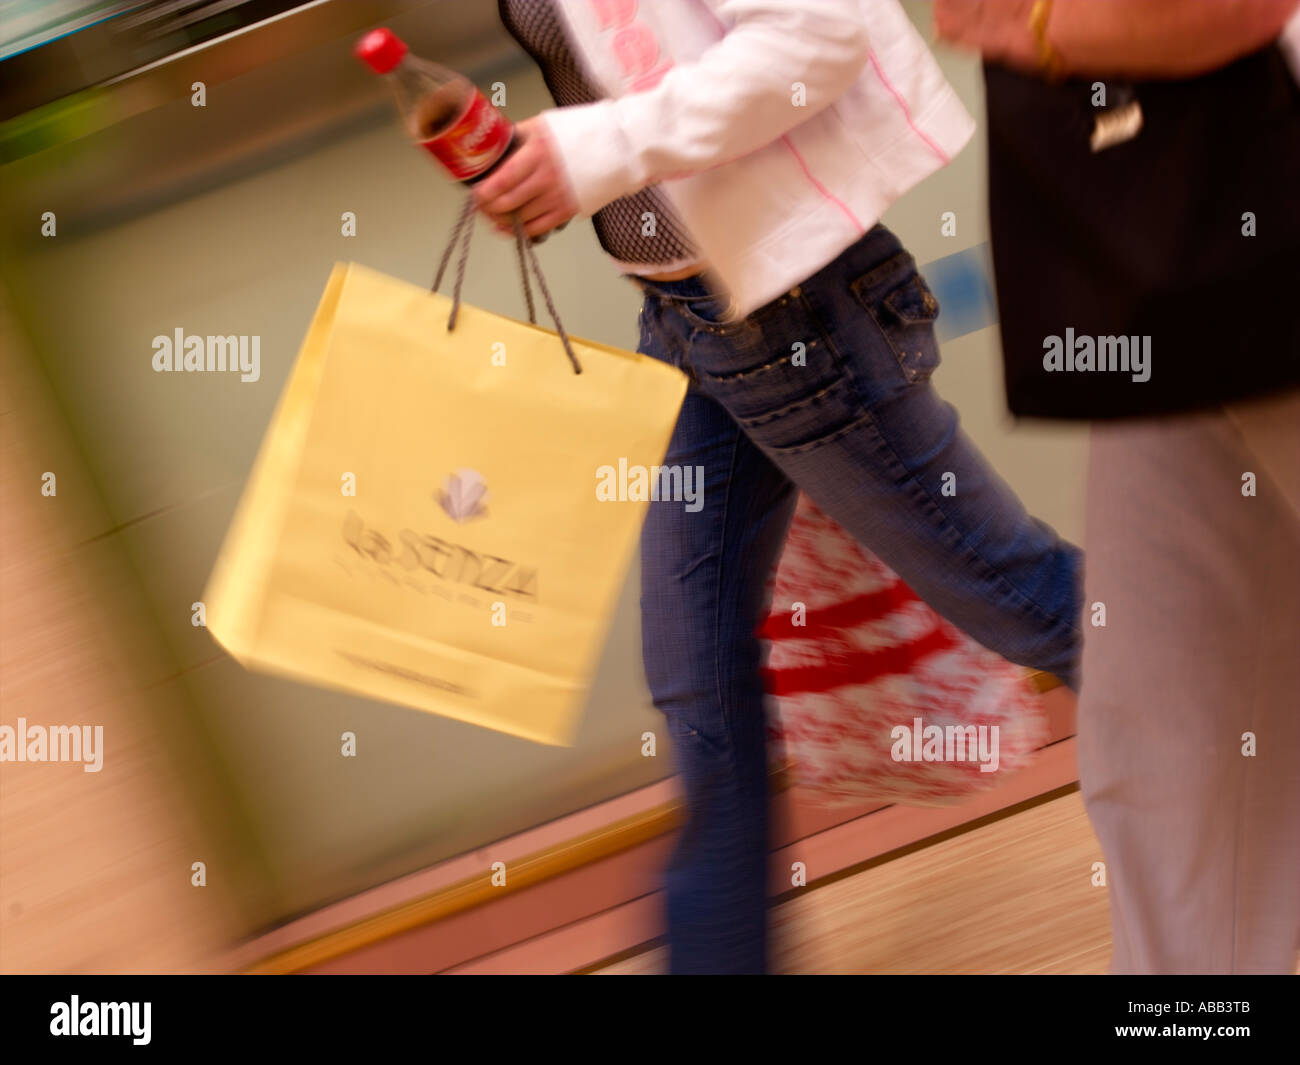 Shoppers, Shopping - Stock Image